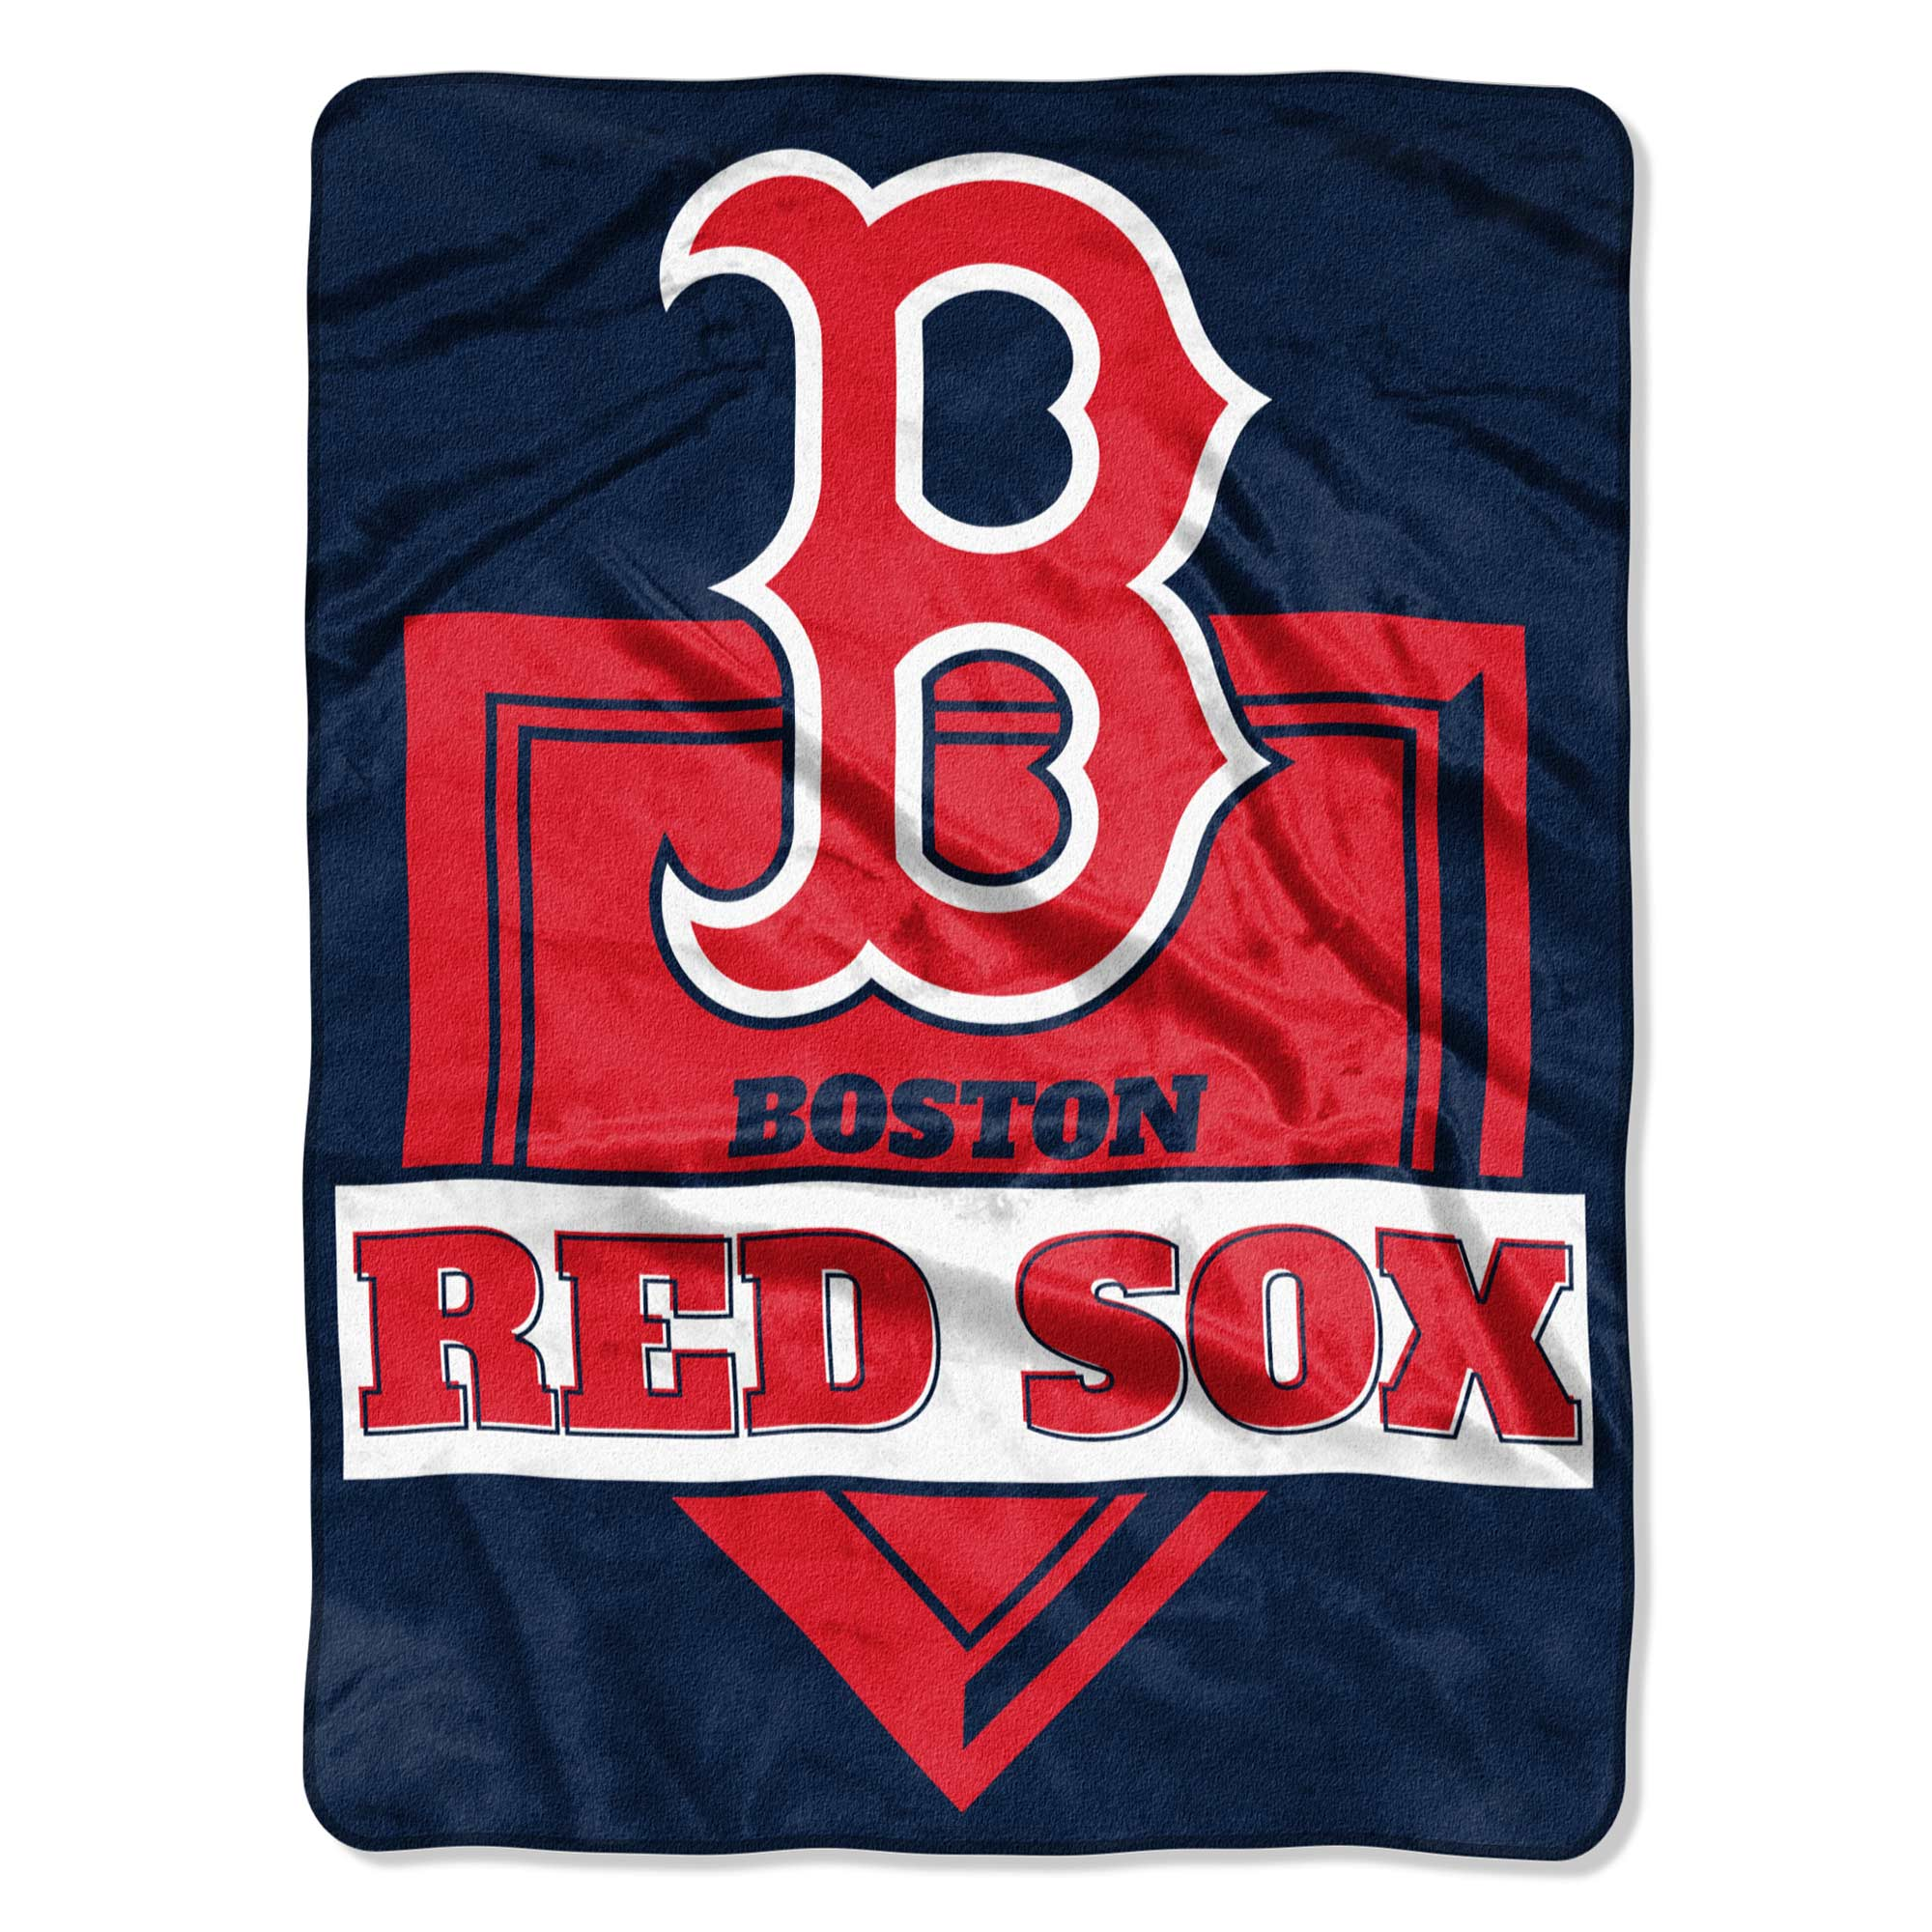 "Boston Red Sox The Northwest Company 60"" x 80"" Home Plate Raschel Plush Blanket - No Size"